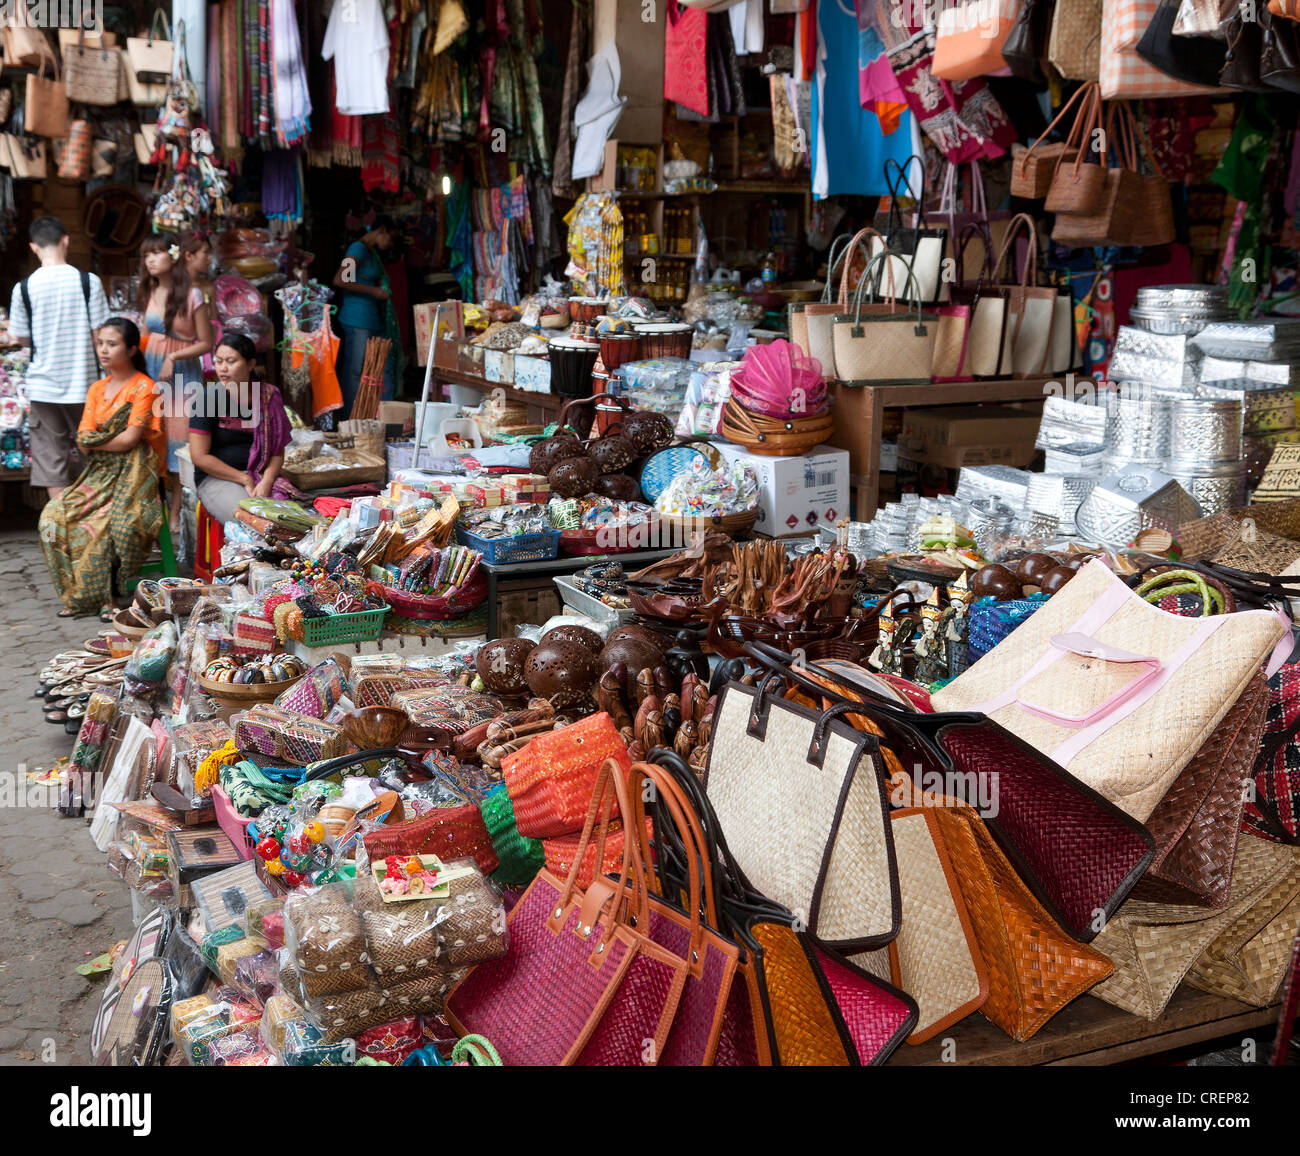 Typical range of goods at a market stall, Ubud, central Bali, Bali, Indonesia, Southeast Asia, Asia - Stock Image